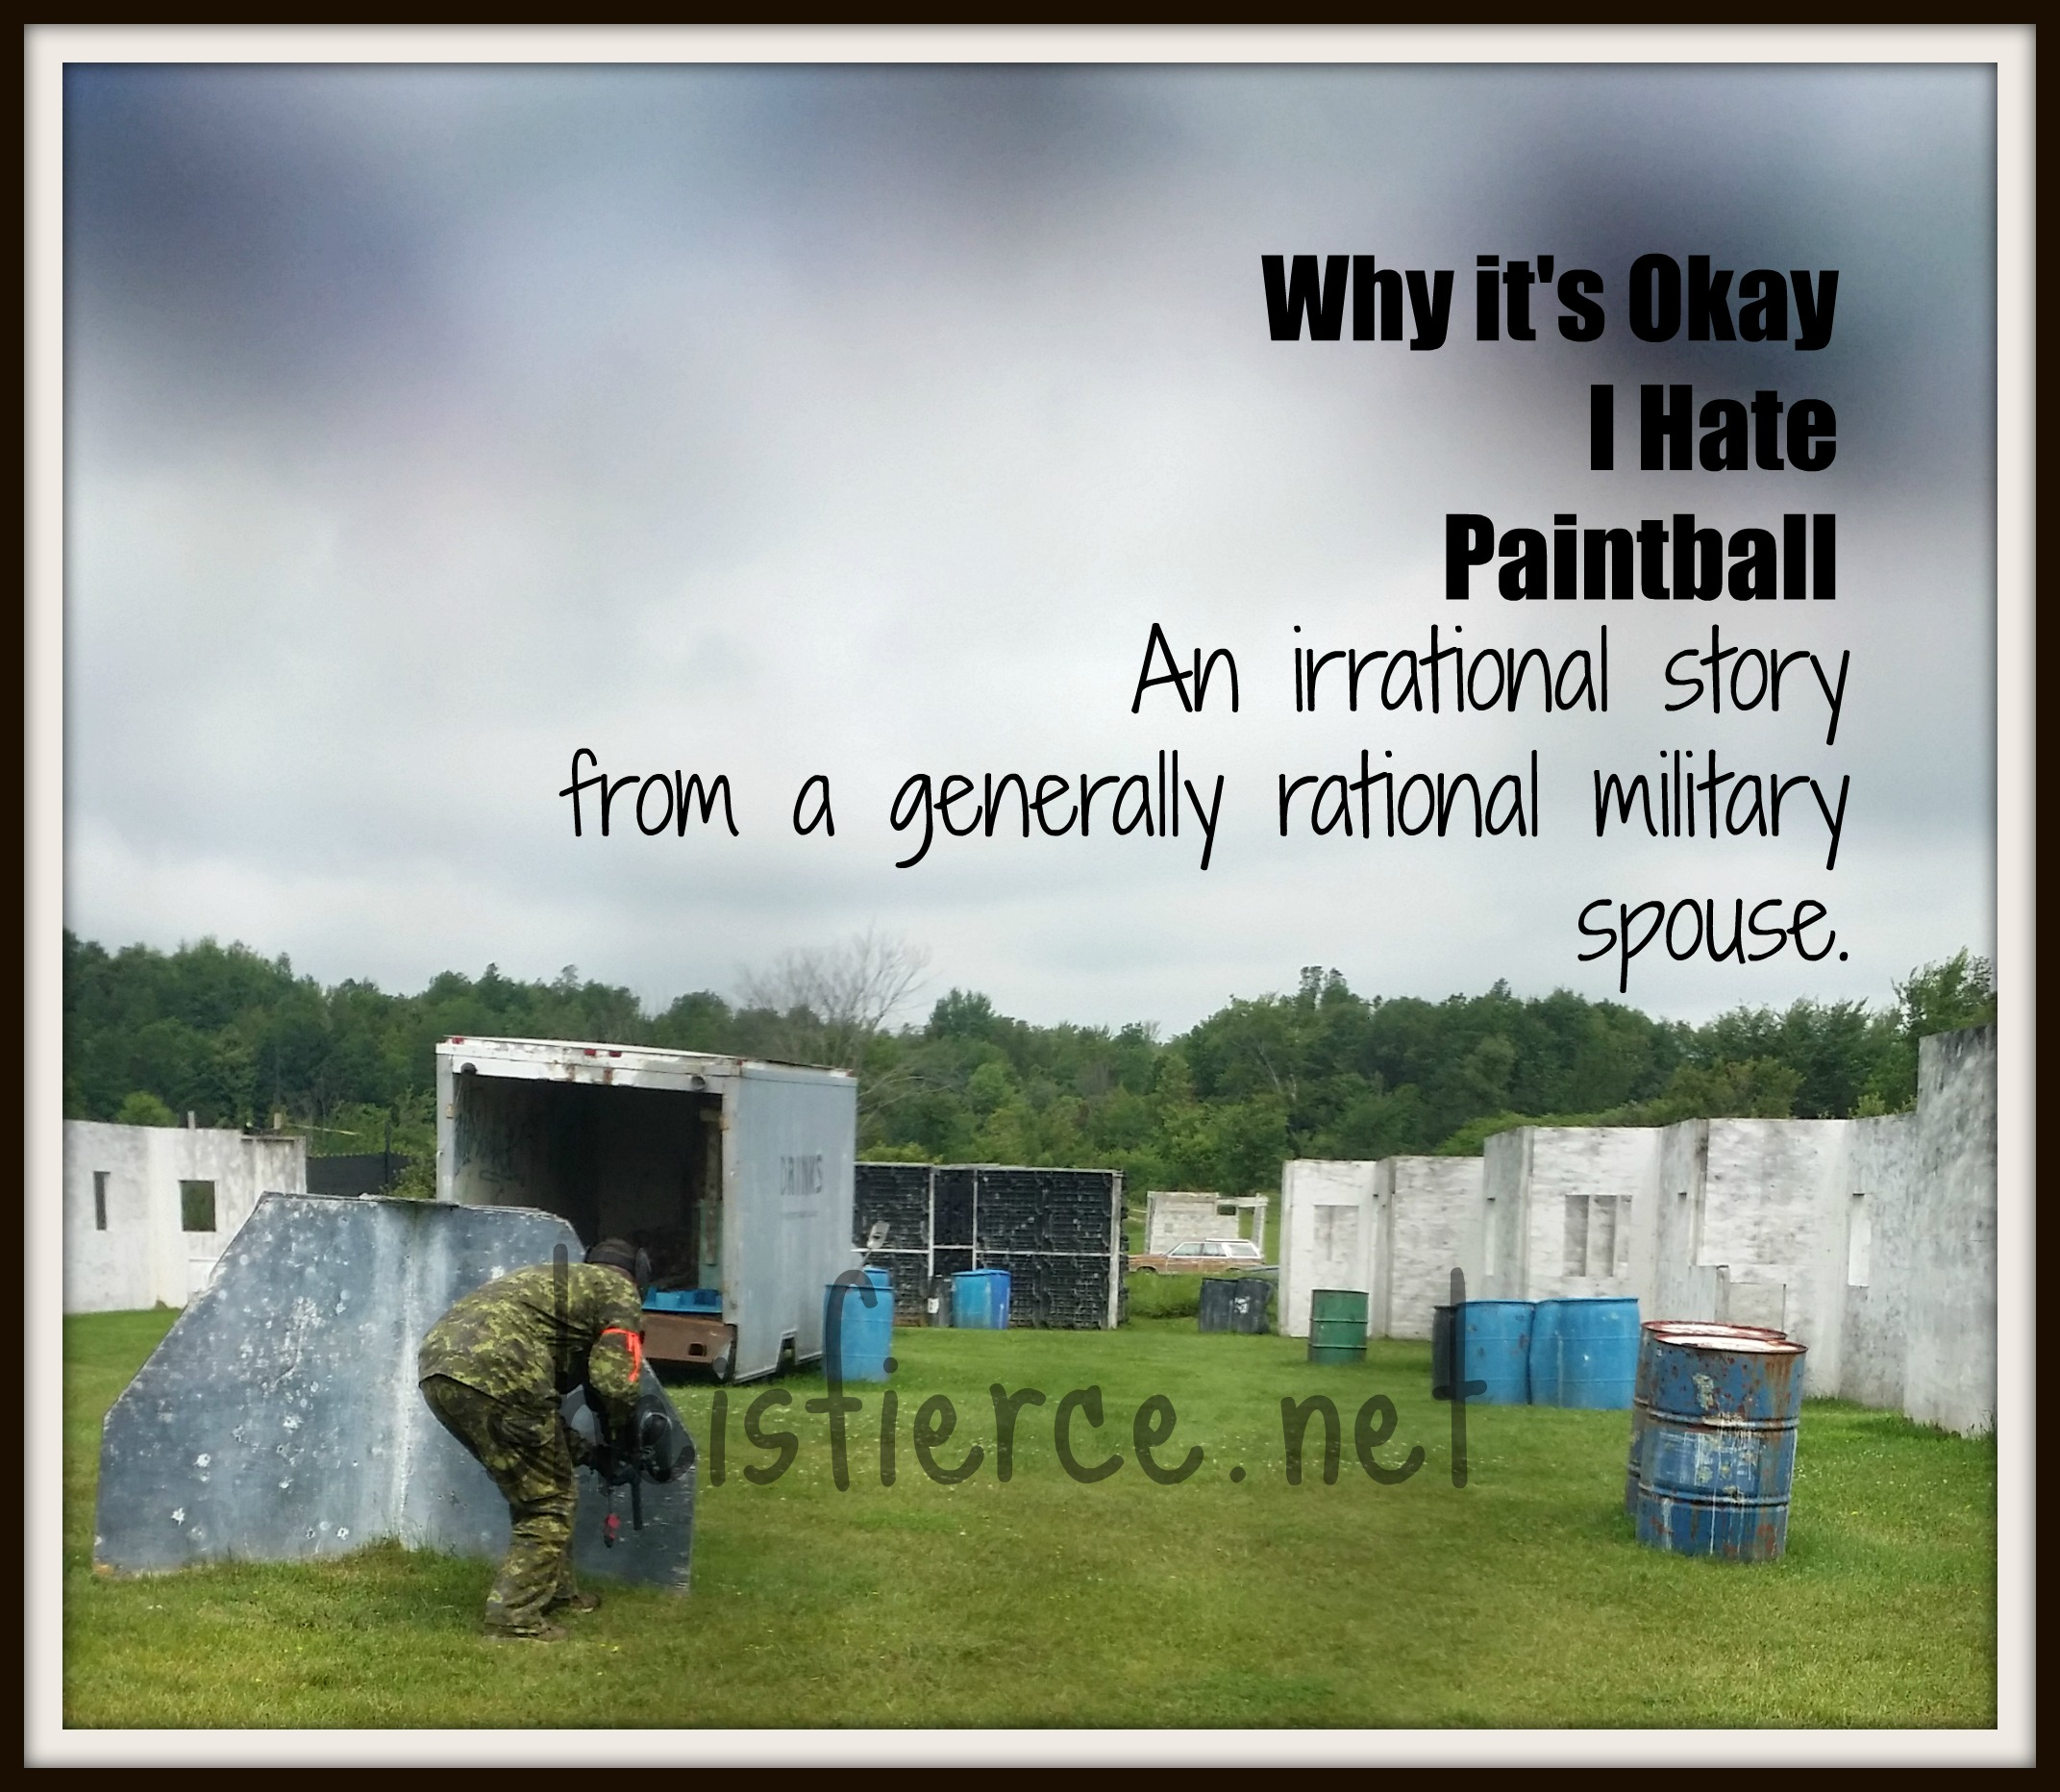 paintball research paper Gtu research paper paintball business plan india tabtight professional, free when you need it, vpn service if you are setting up a paintball business then it is practical for you to put pen to paper a paintball business plan.